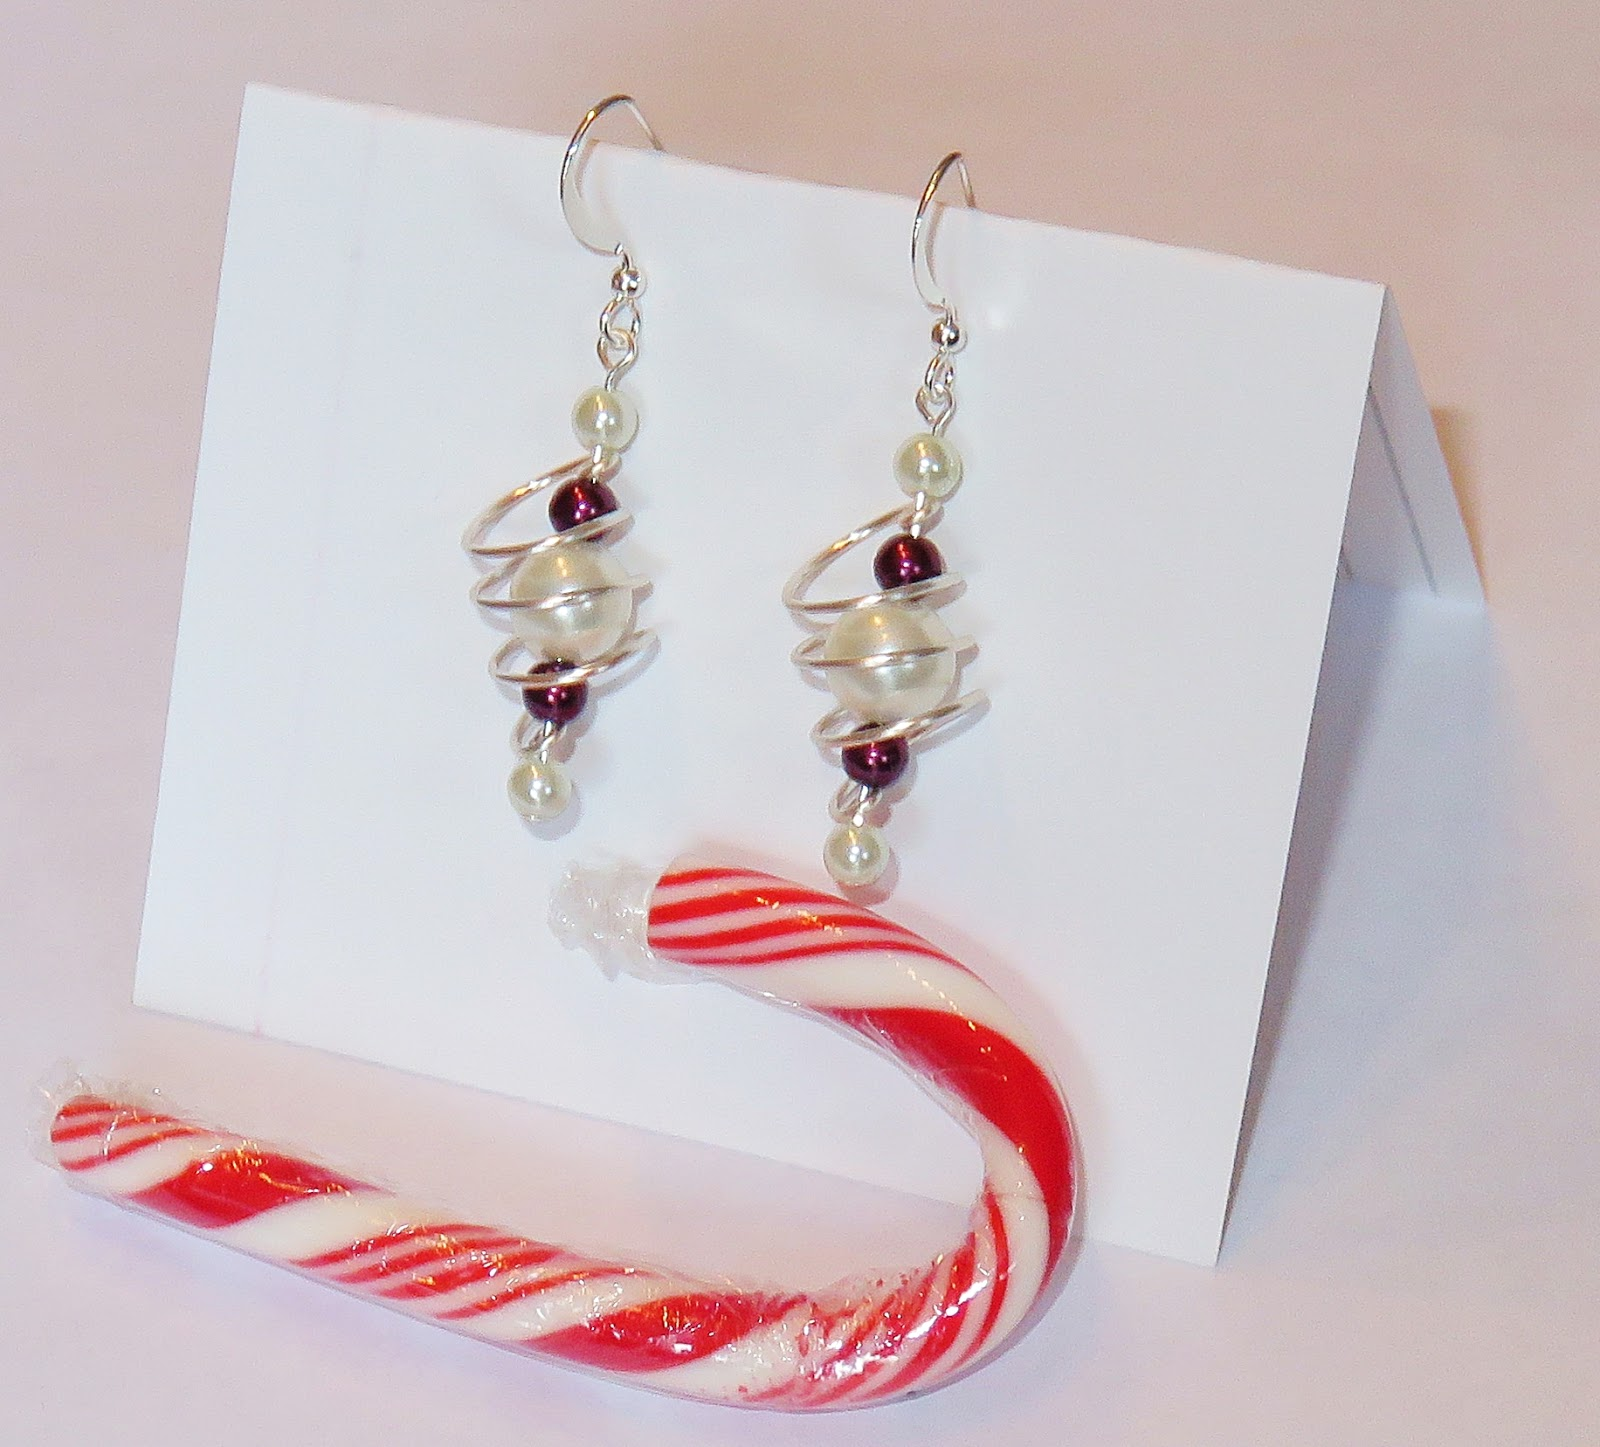 I Did Have One Small Red And White Candy Cane, So I Tried To Lay It Next To  The Earrings On Their Card: